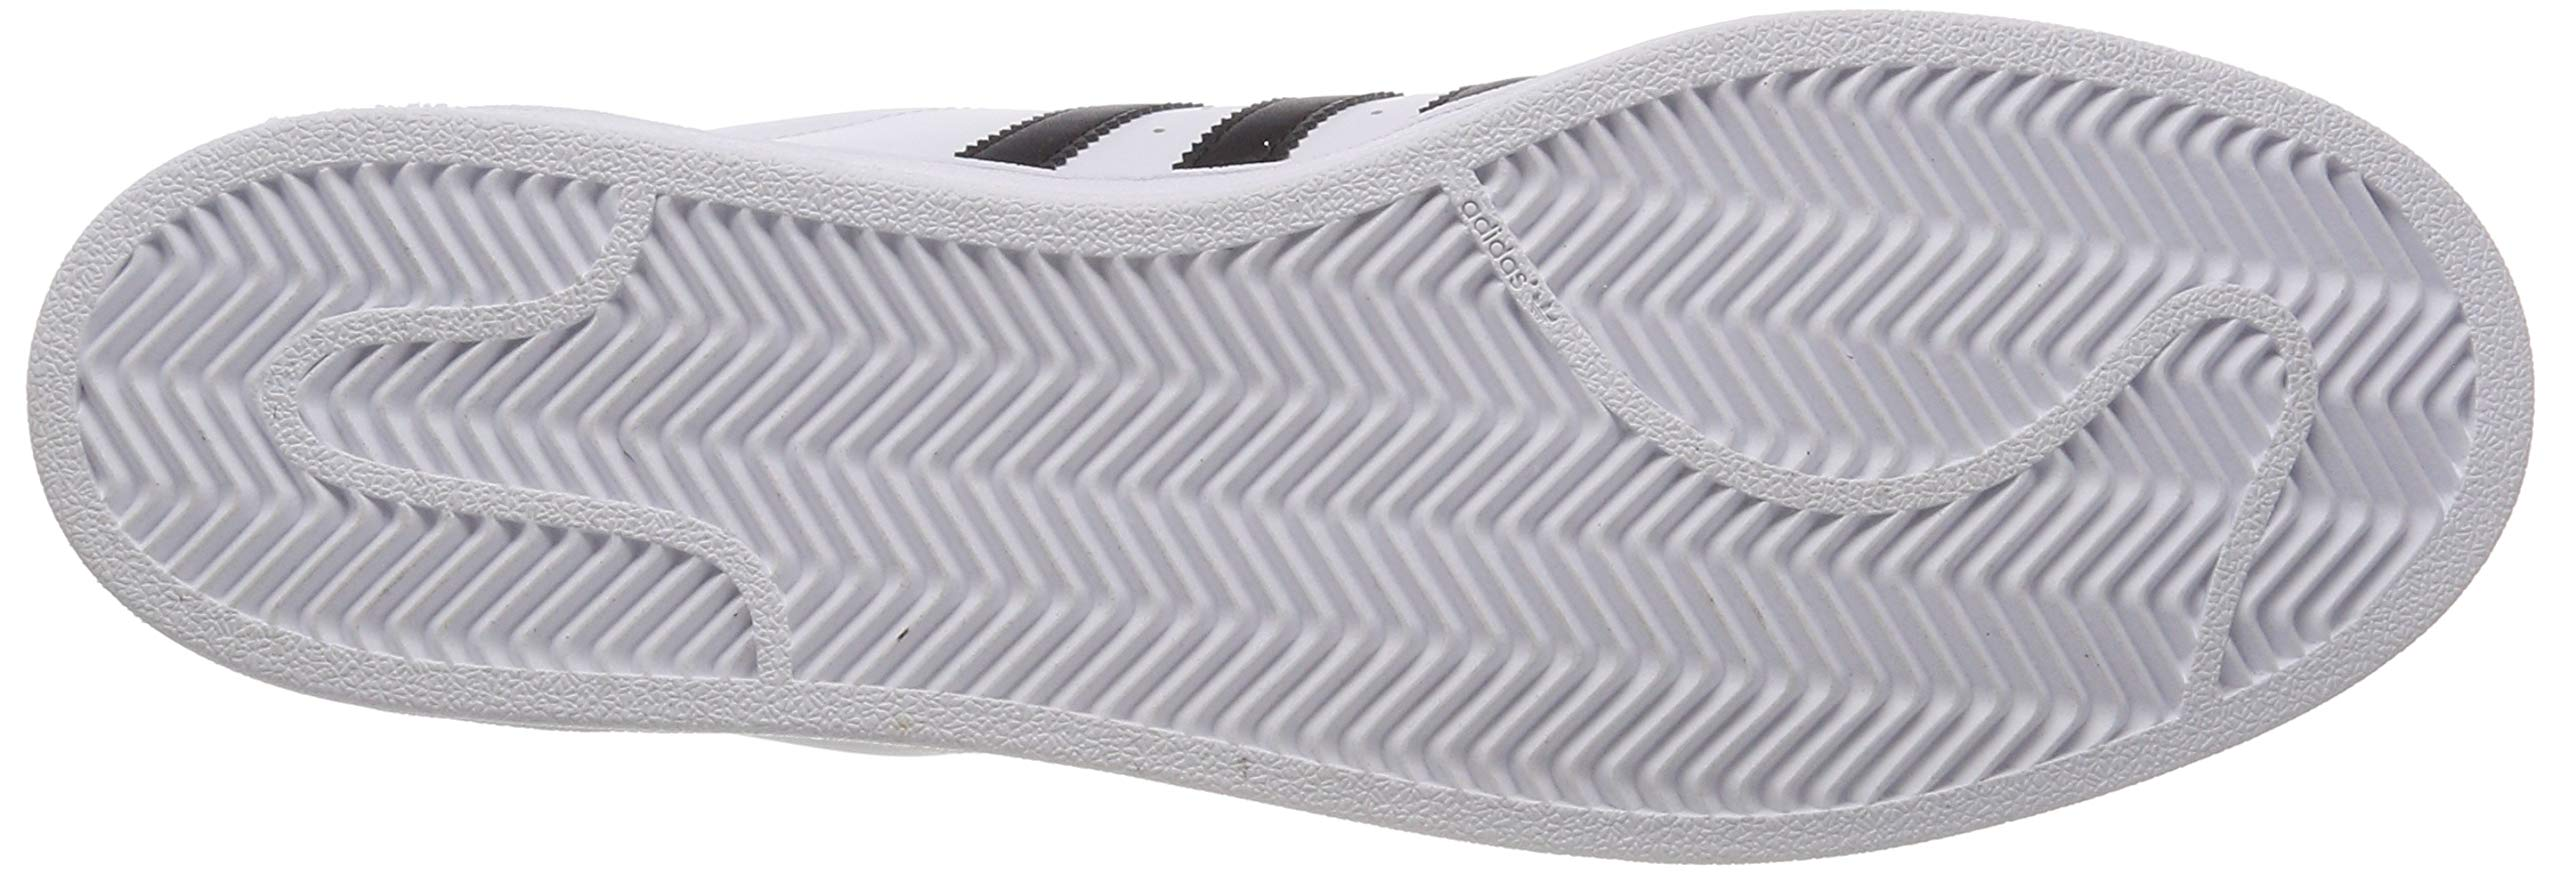 new product c6852 e391e ADIDAS ORIGINALS SUPERSTAR C77124 bianco nero scarpe unisex pelle 44   Amazon.it  Libri